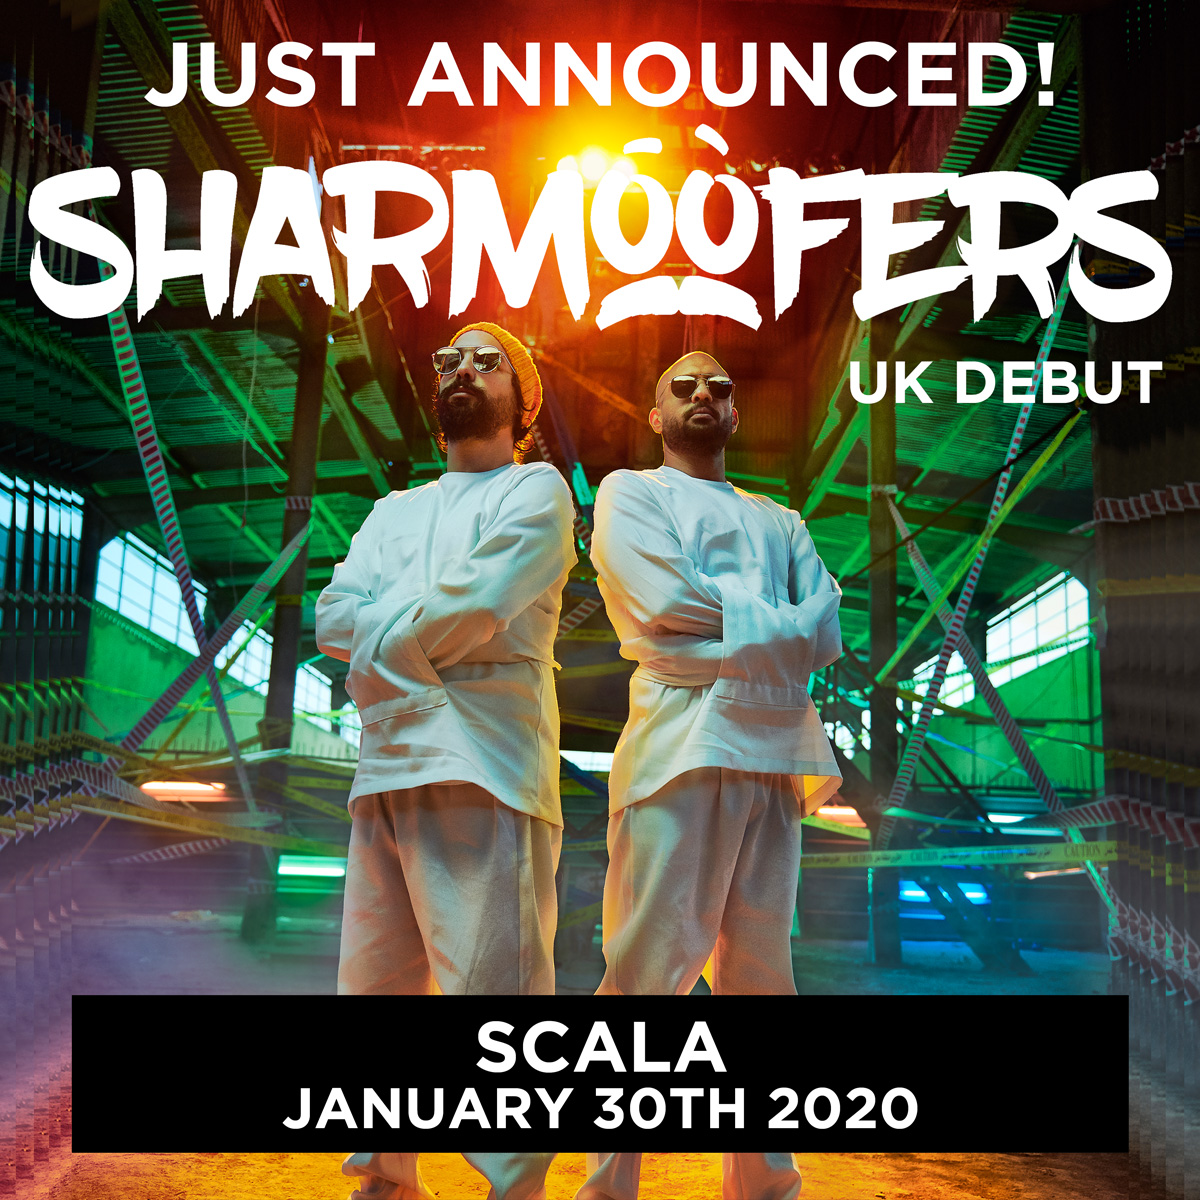 Sharmoofers UK Debut IG 01